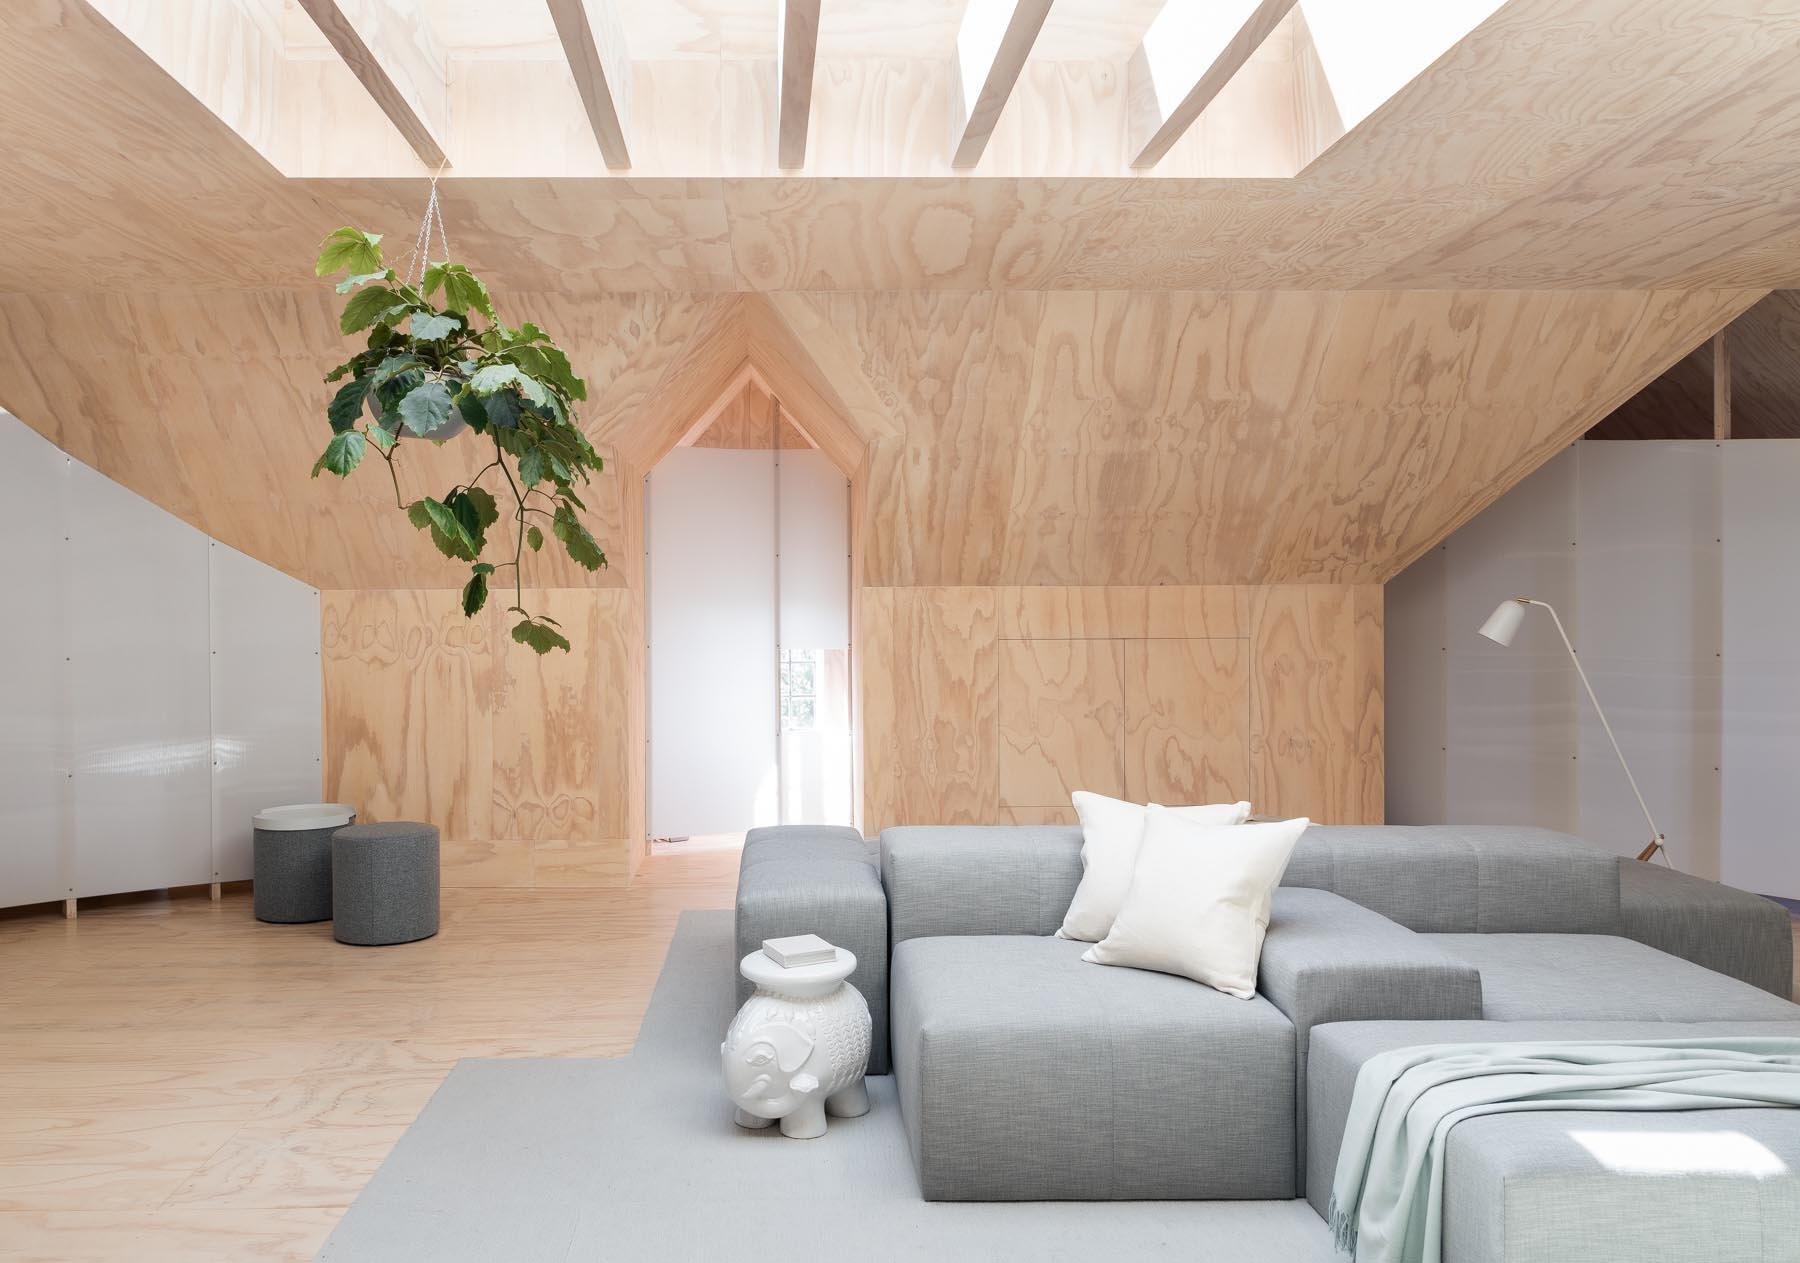 A plywood lined attic with skylight and living room.